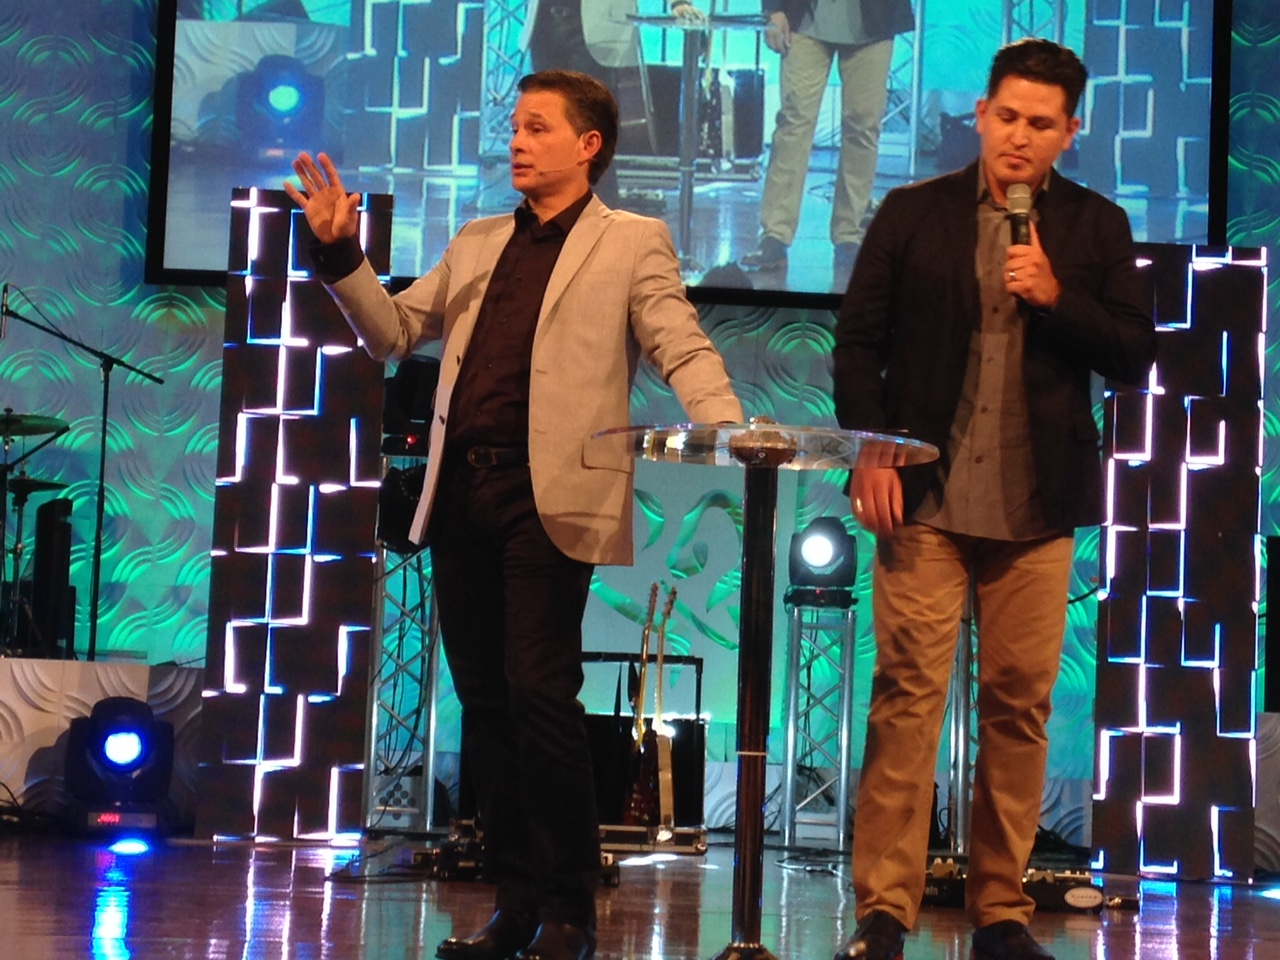 Pastor Cash Luna (L) taught with much wisdom AND anointing, even through an interpreter!